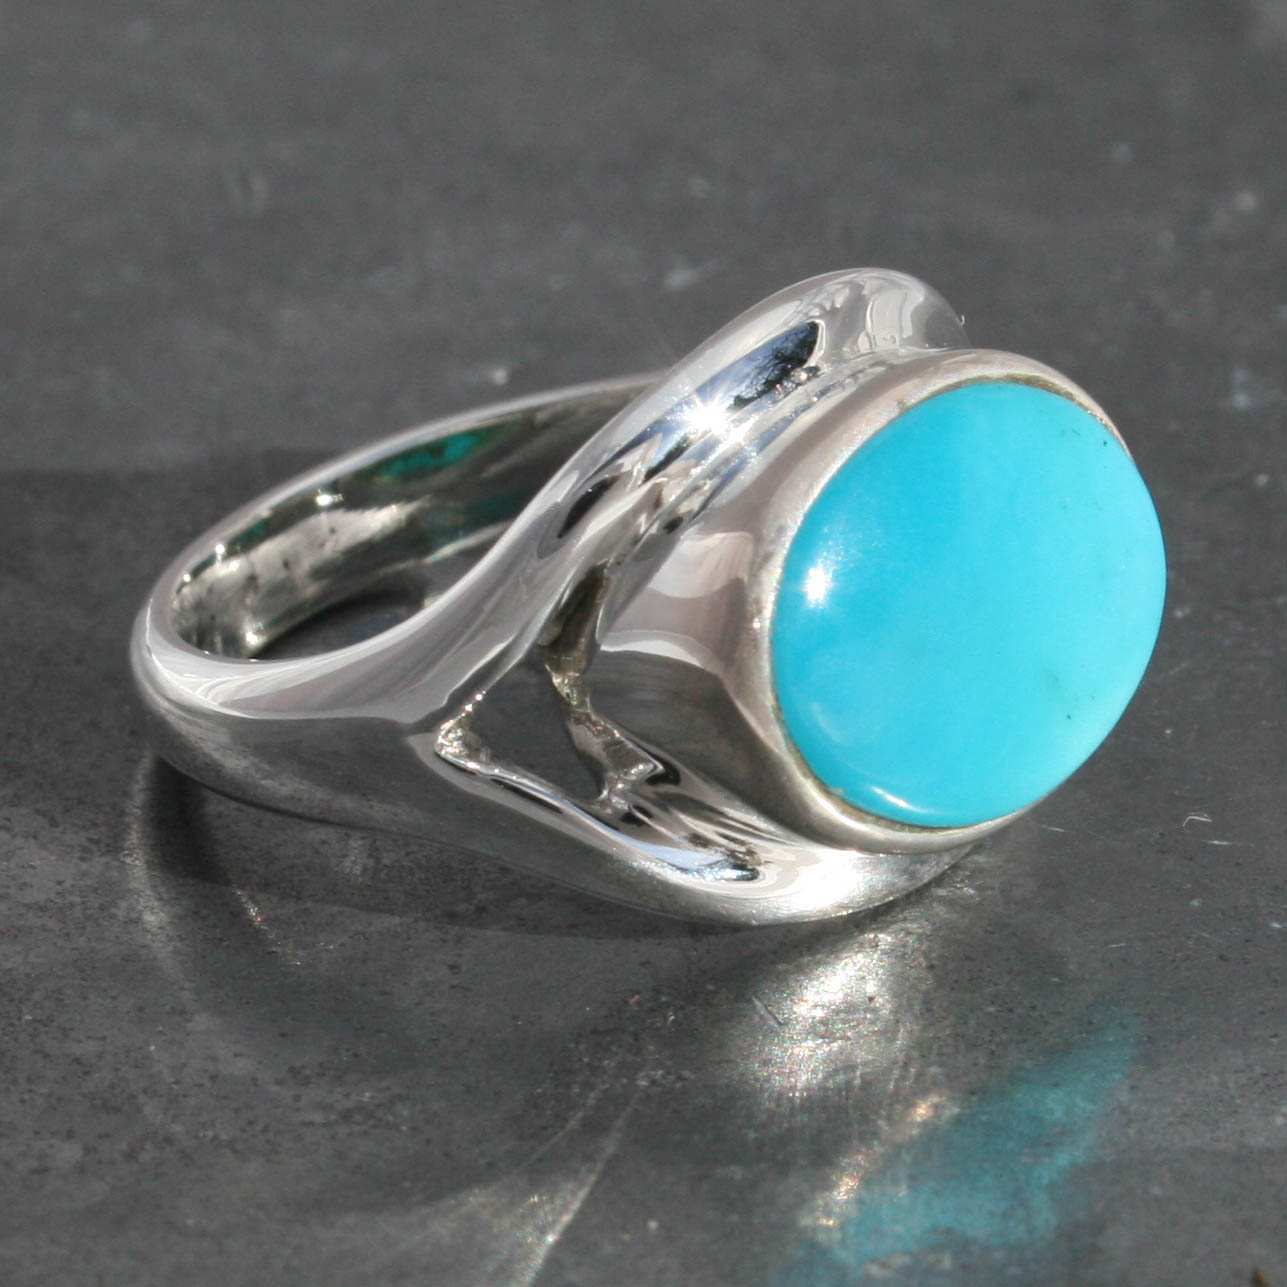 bisbee products ring logan jewelry rings turquoise hollowell single